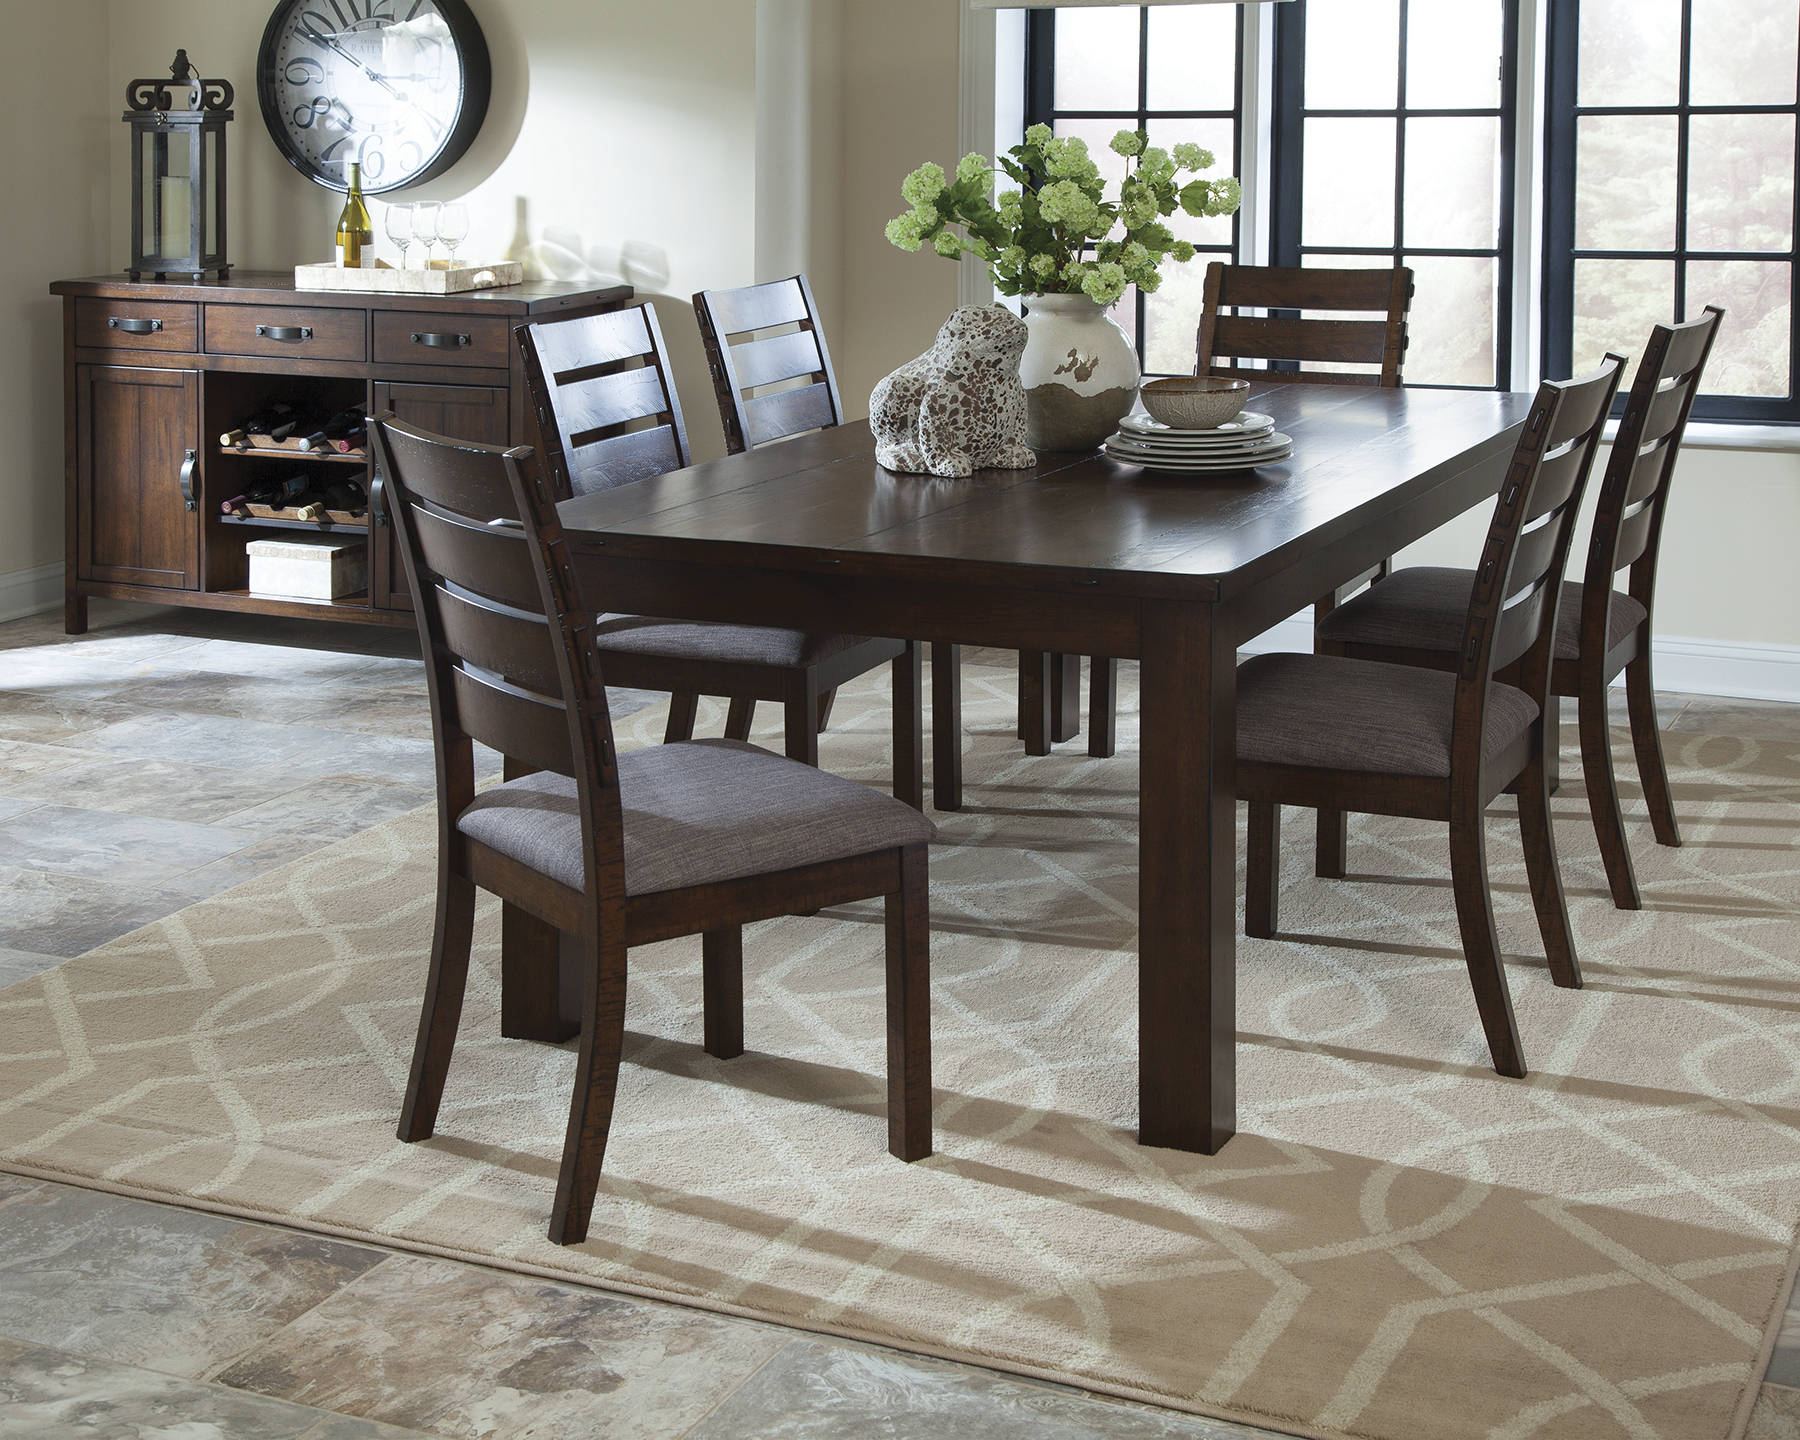 Wiltshire rustic pecan grey wood fabric dining room set for Pecan wood furniture dining room